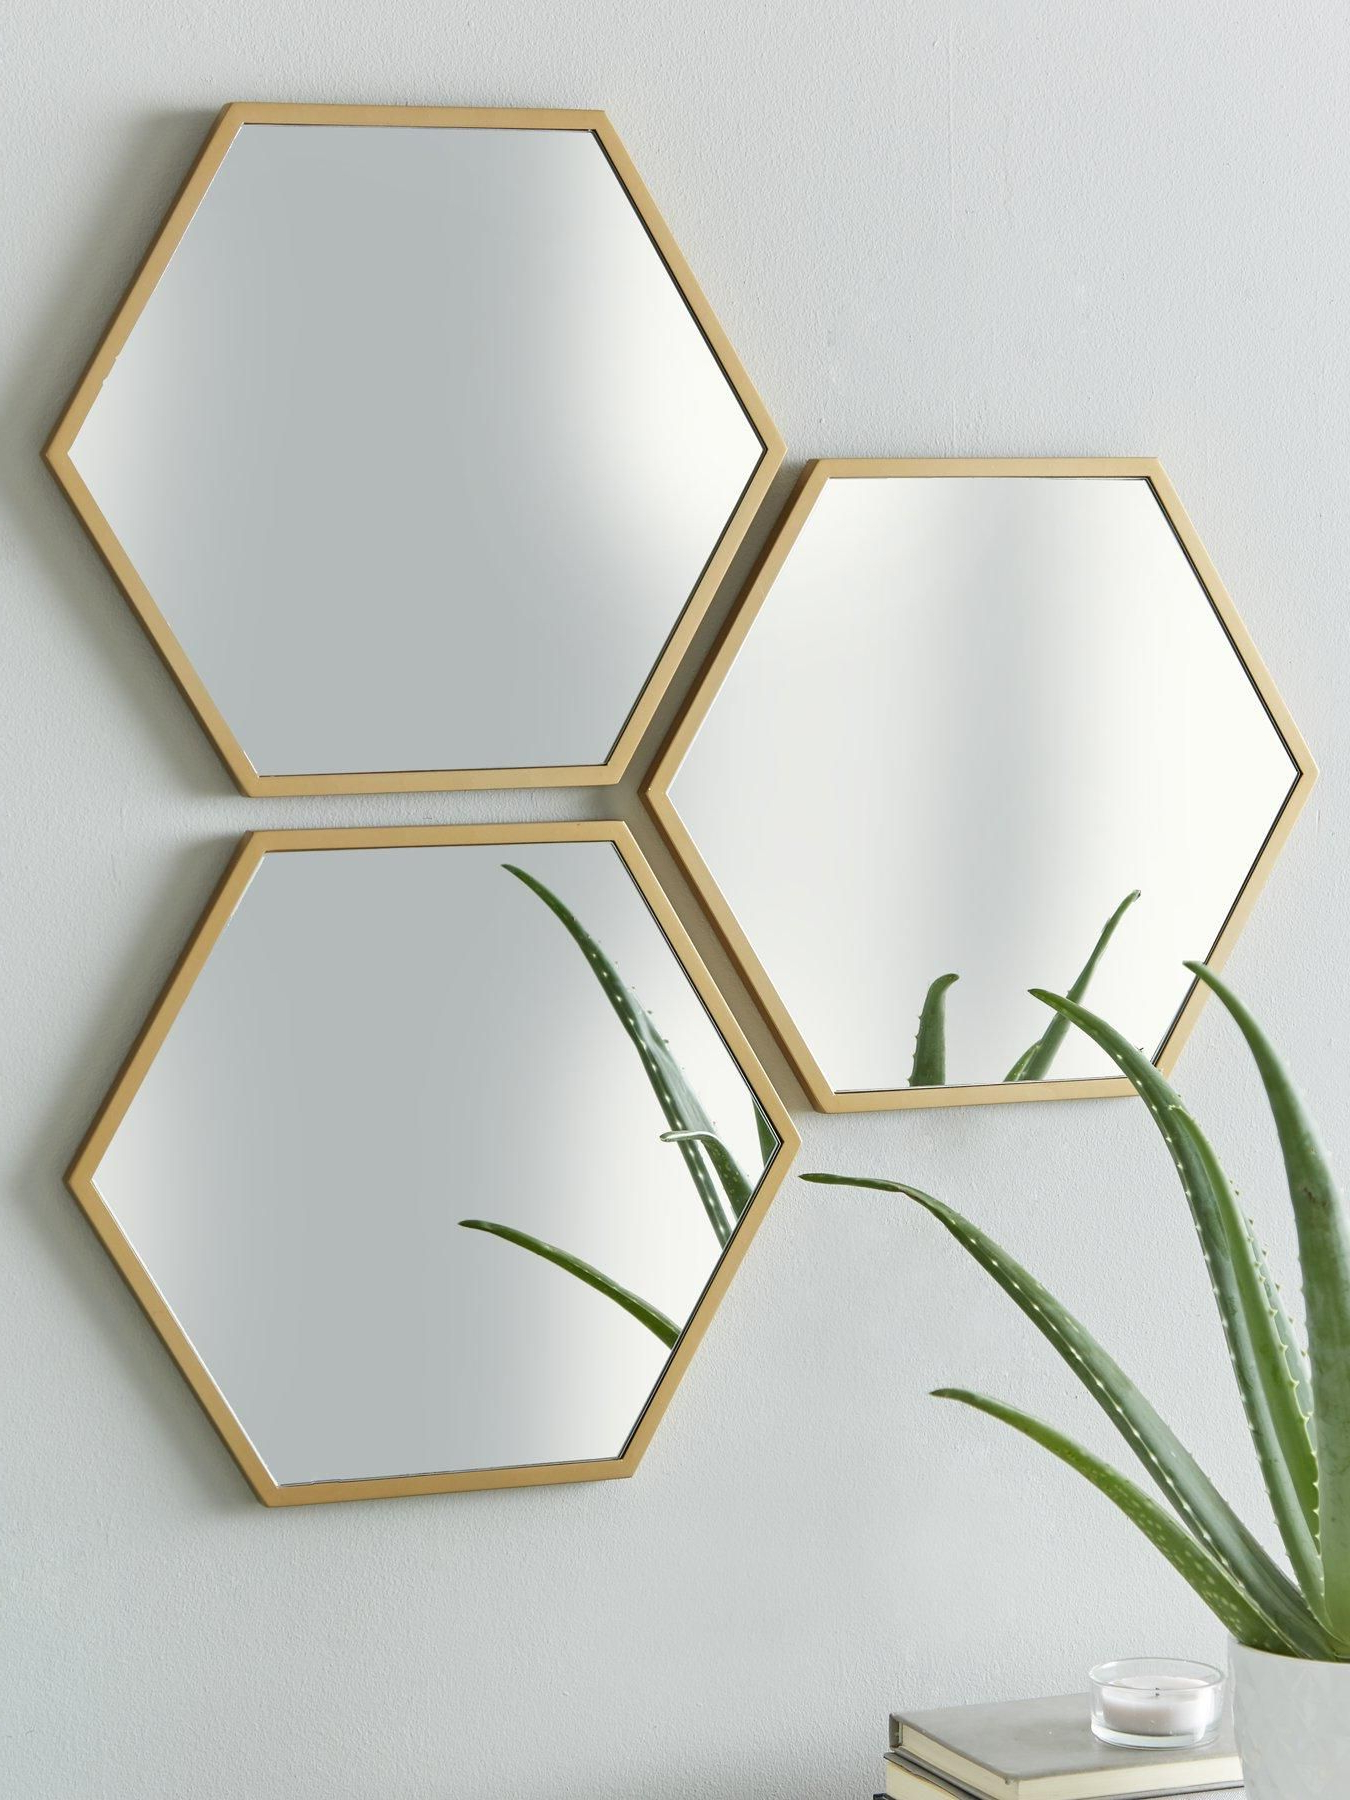 Most Recent Set Of 3 Gold Hexagon Wall Mirrors In (View 2 of 20)